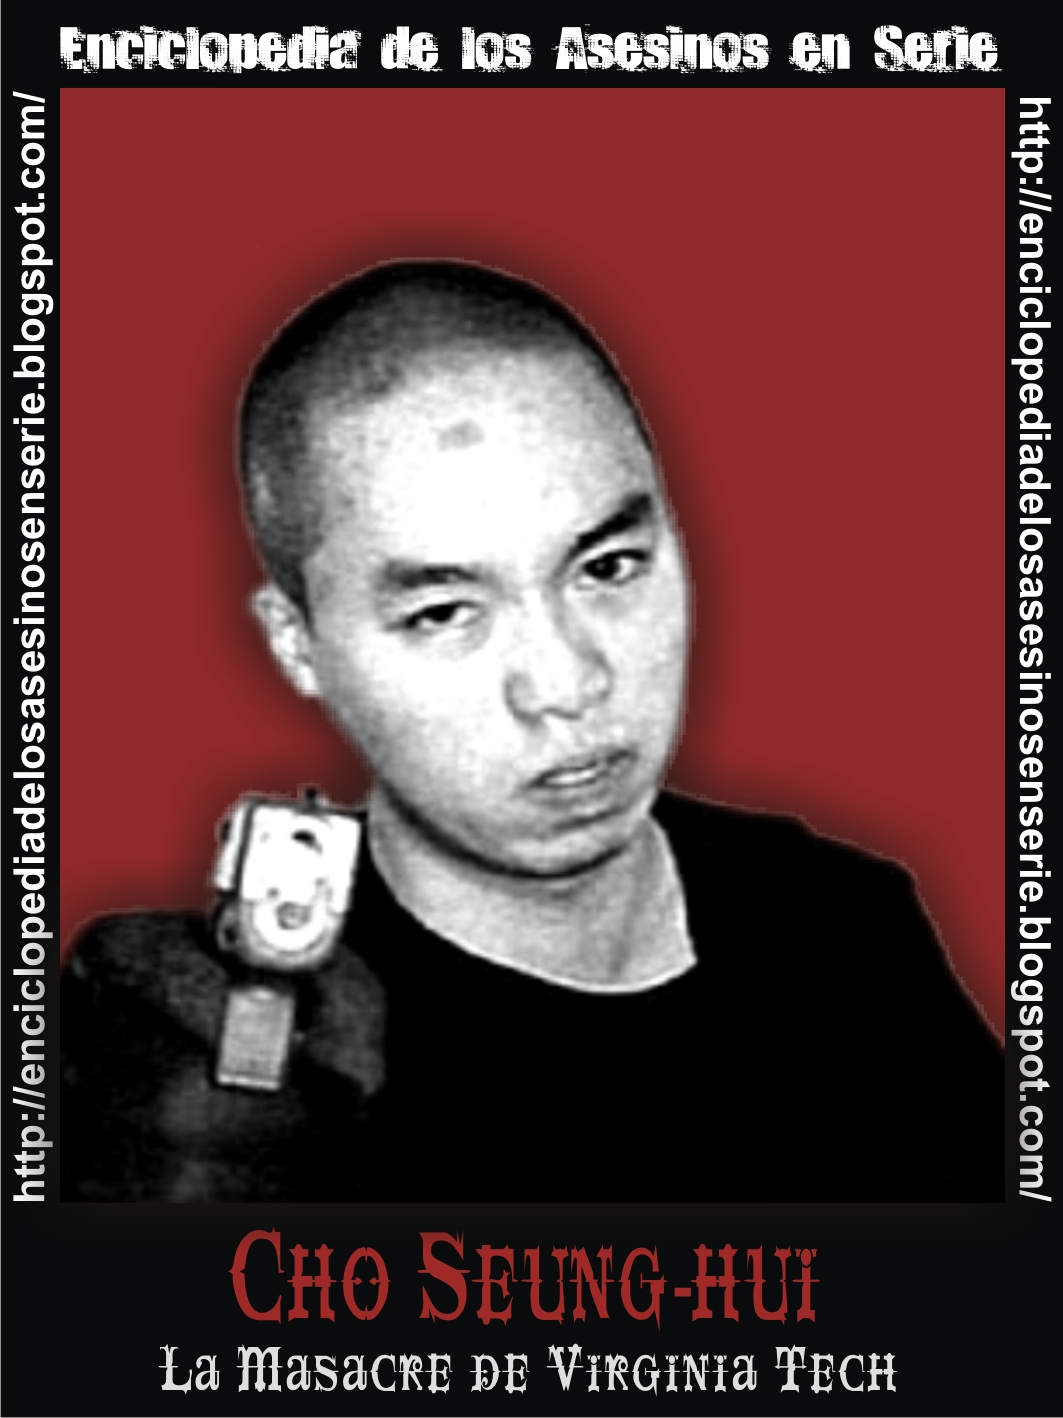 seung hui cho Cho seung-hui (january 18, 1984 - april 16, 2007), was the perpetrator of the virginia tech massacre of april 16, 2007, in blacksburg, virginia, united states, according to police reports.